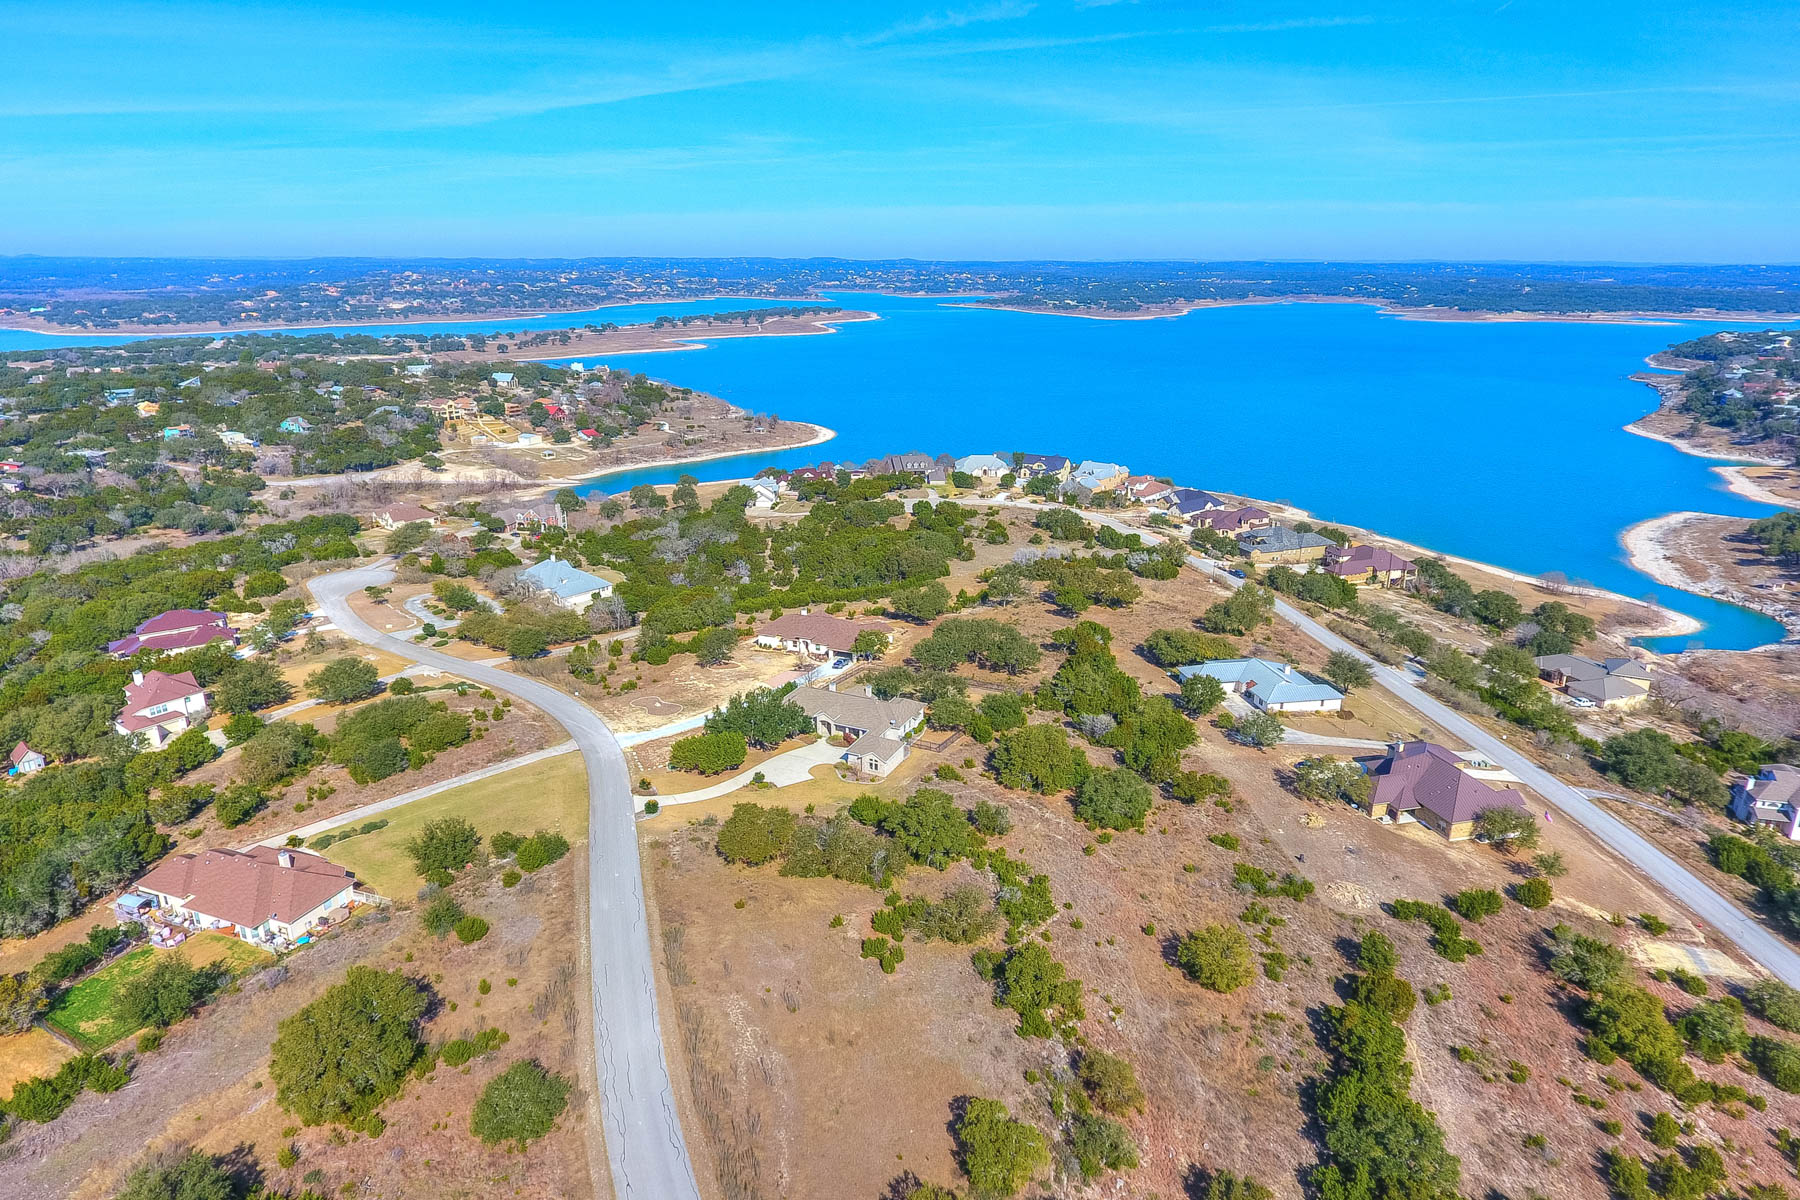 Land for Sale at Spectacular Views in an Upscale Canyon Lake Neighborhood 0 Scarlet Court Canyon Lake, Texas 78133 United States